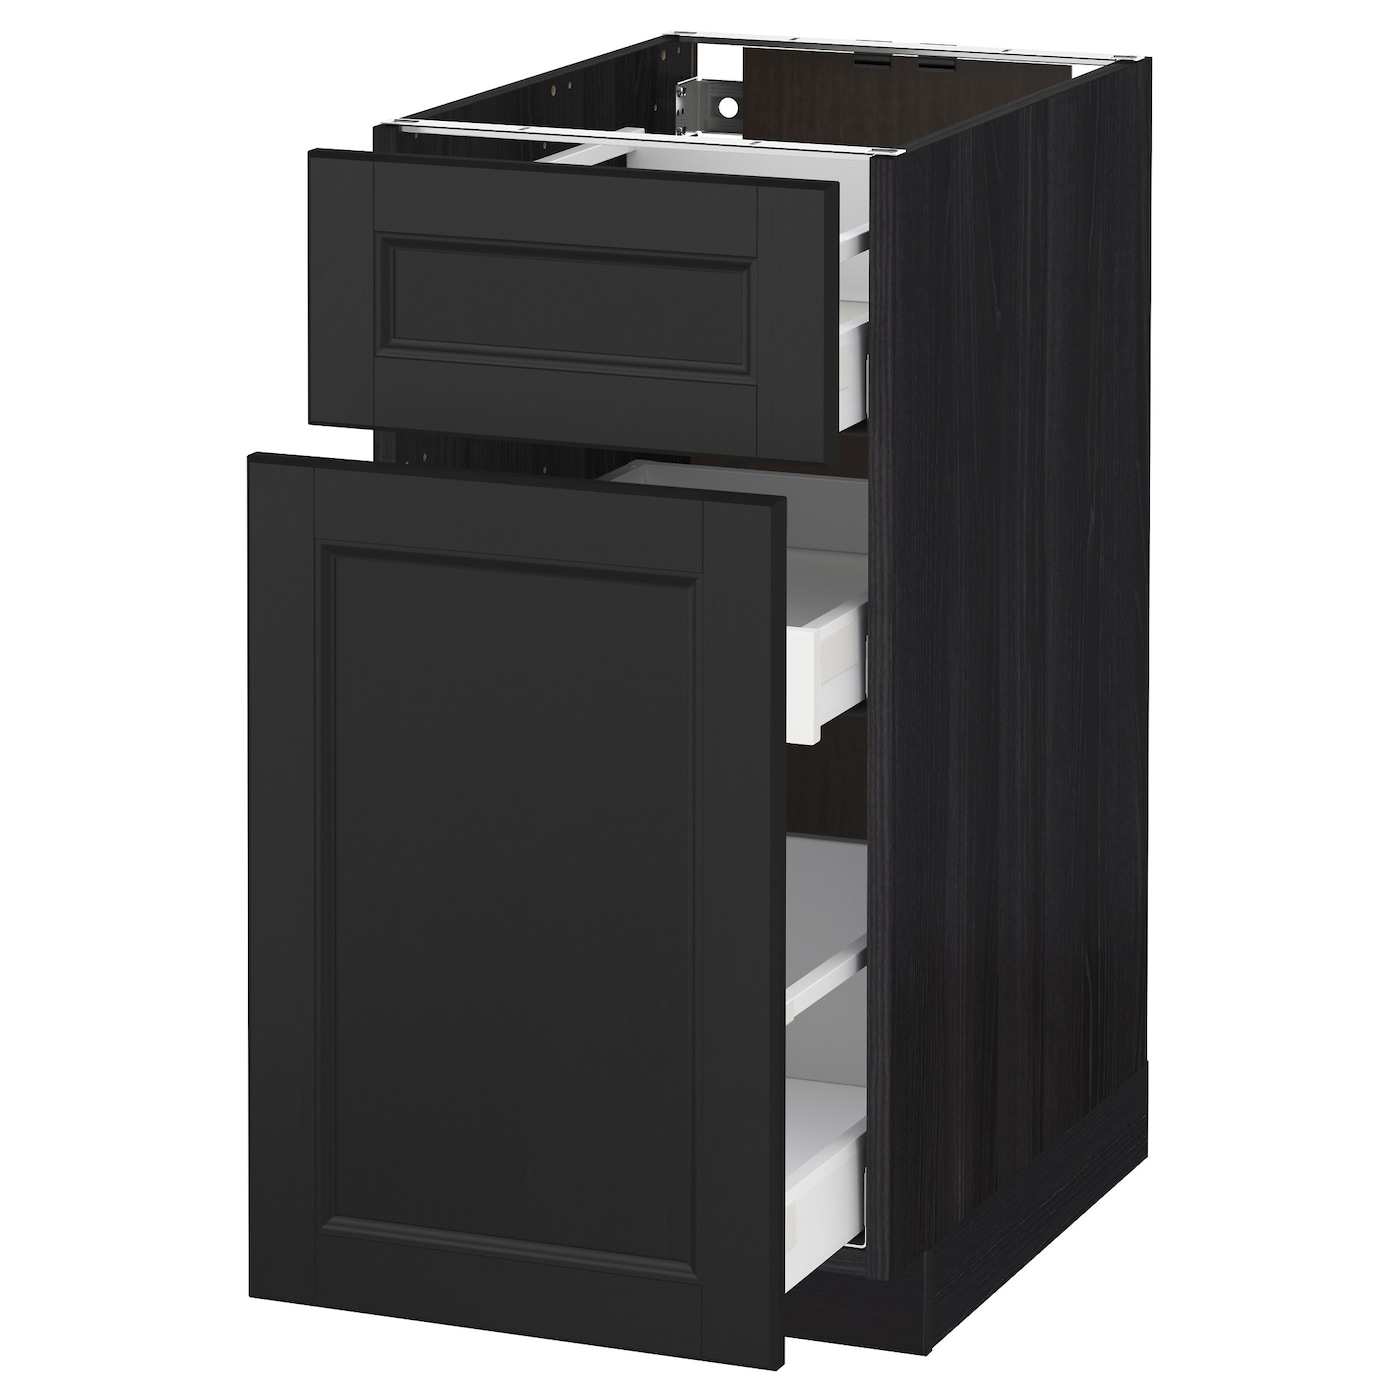 Metod Maximera Base Cabinet P Out Storage Drawer Black Laxarby Black Brown 40x60 Cm Ikea